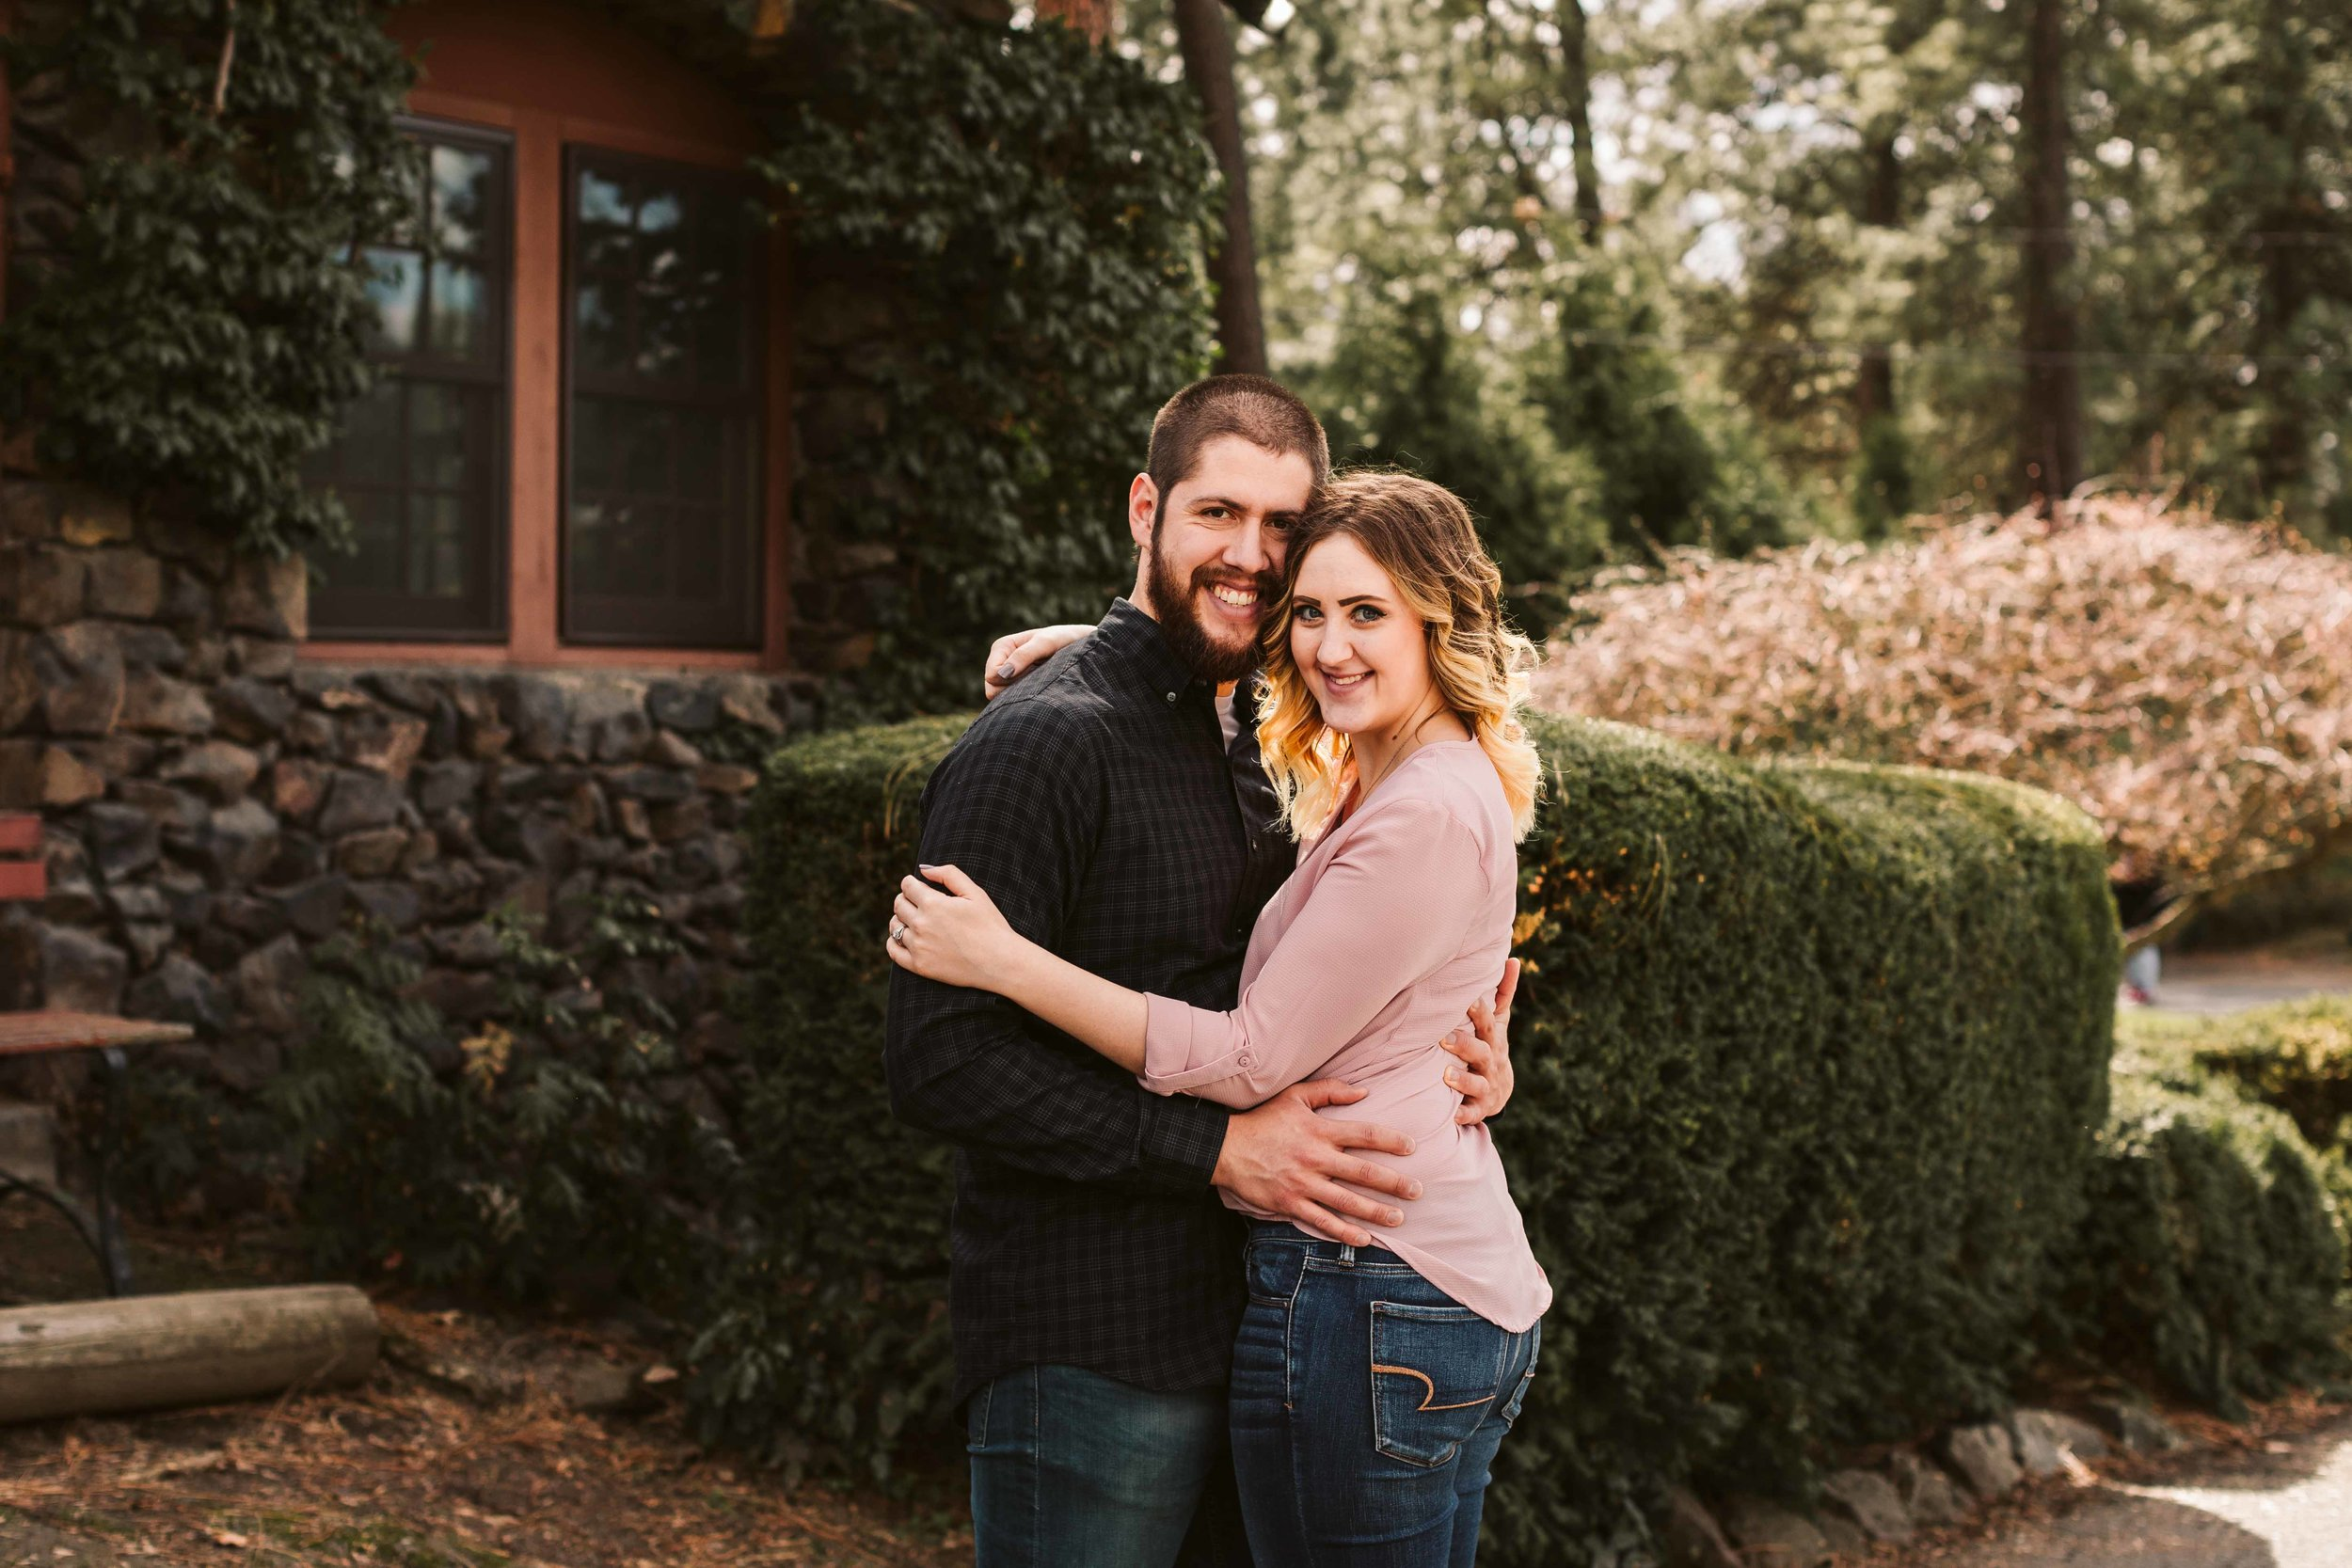 spokane-engagement-photographer-20.jpg